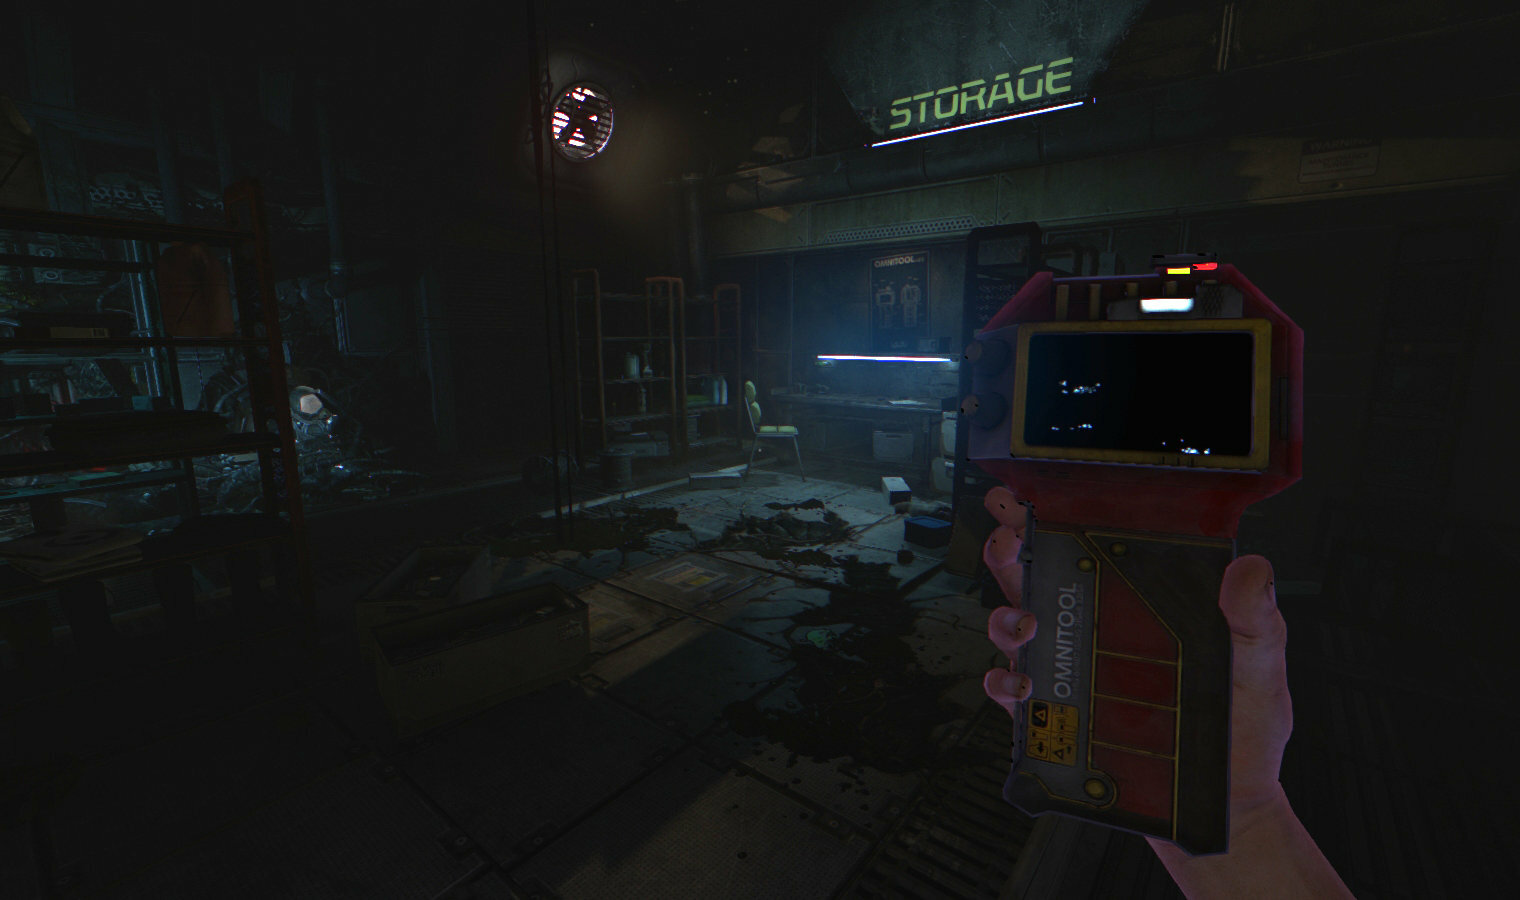 Soma is free during 48 hours on GOG 95a45a1fa95f6974bf9b762989ce968b6ae10434175991f18c2a7c840b1841b5